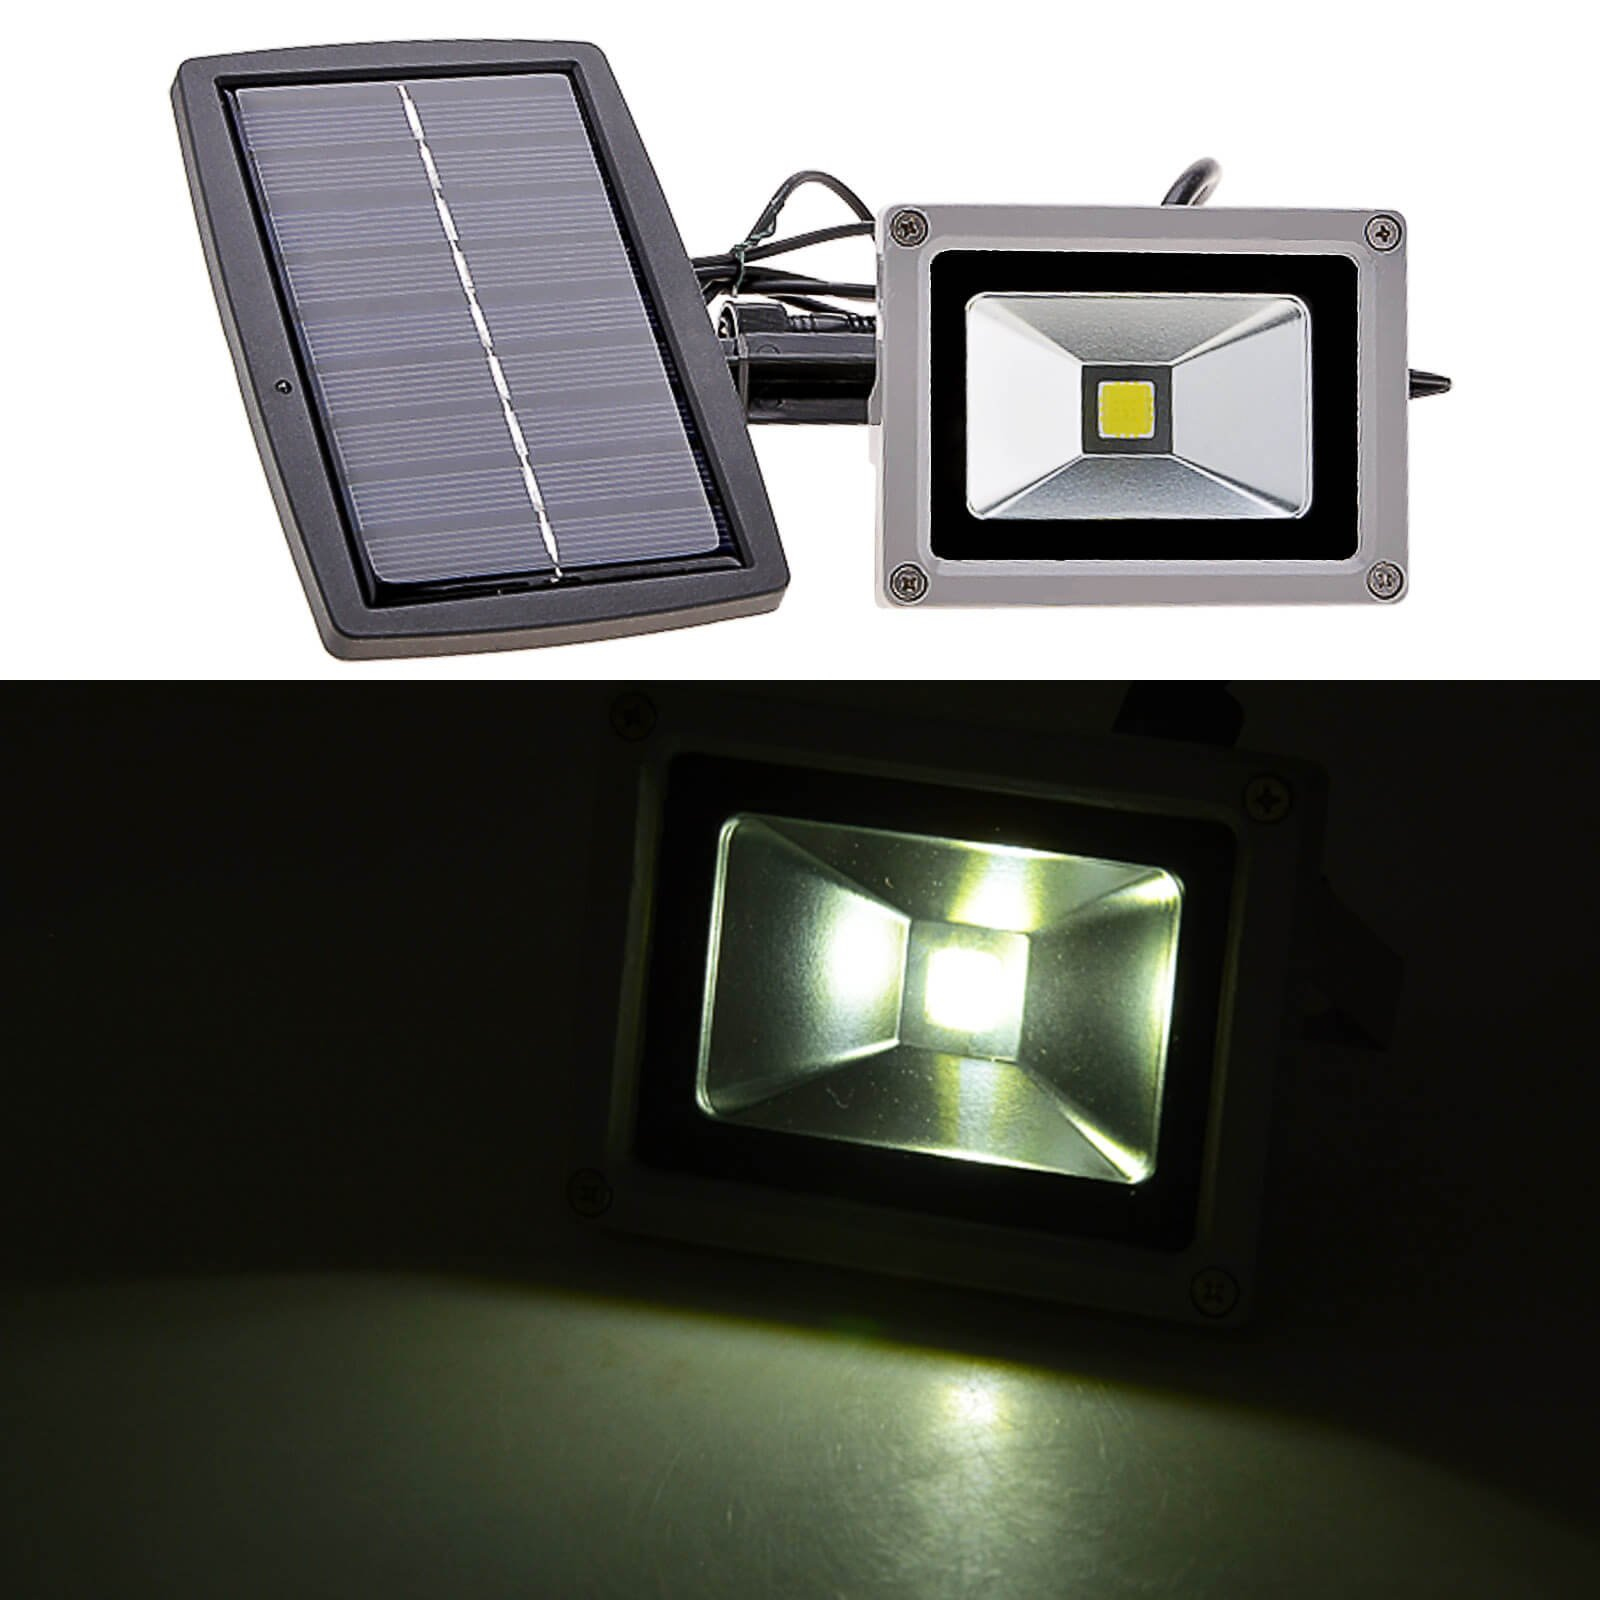 Solar Power LED Flood Night Light 10w Garden Spotlight Waterproof Outdoor Lamp (Energy class A++) (Cold White) by Homdox (Image #4)